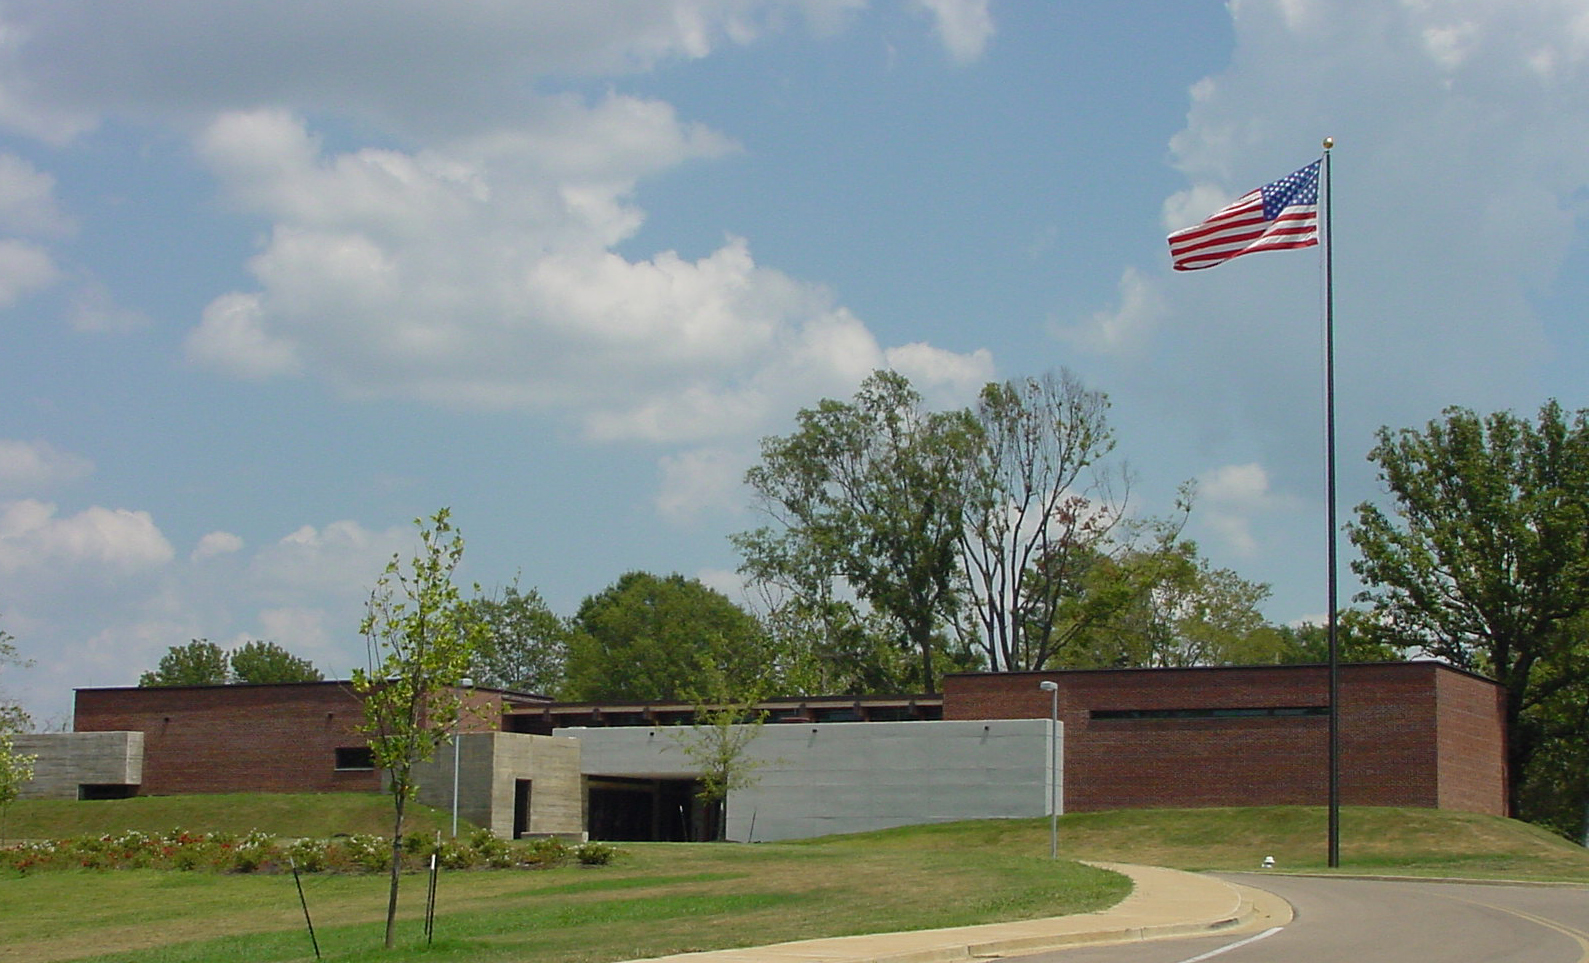 Corinth Interpretive Center